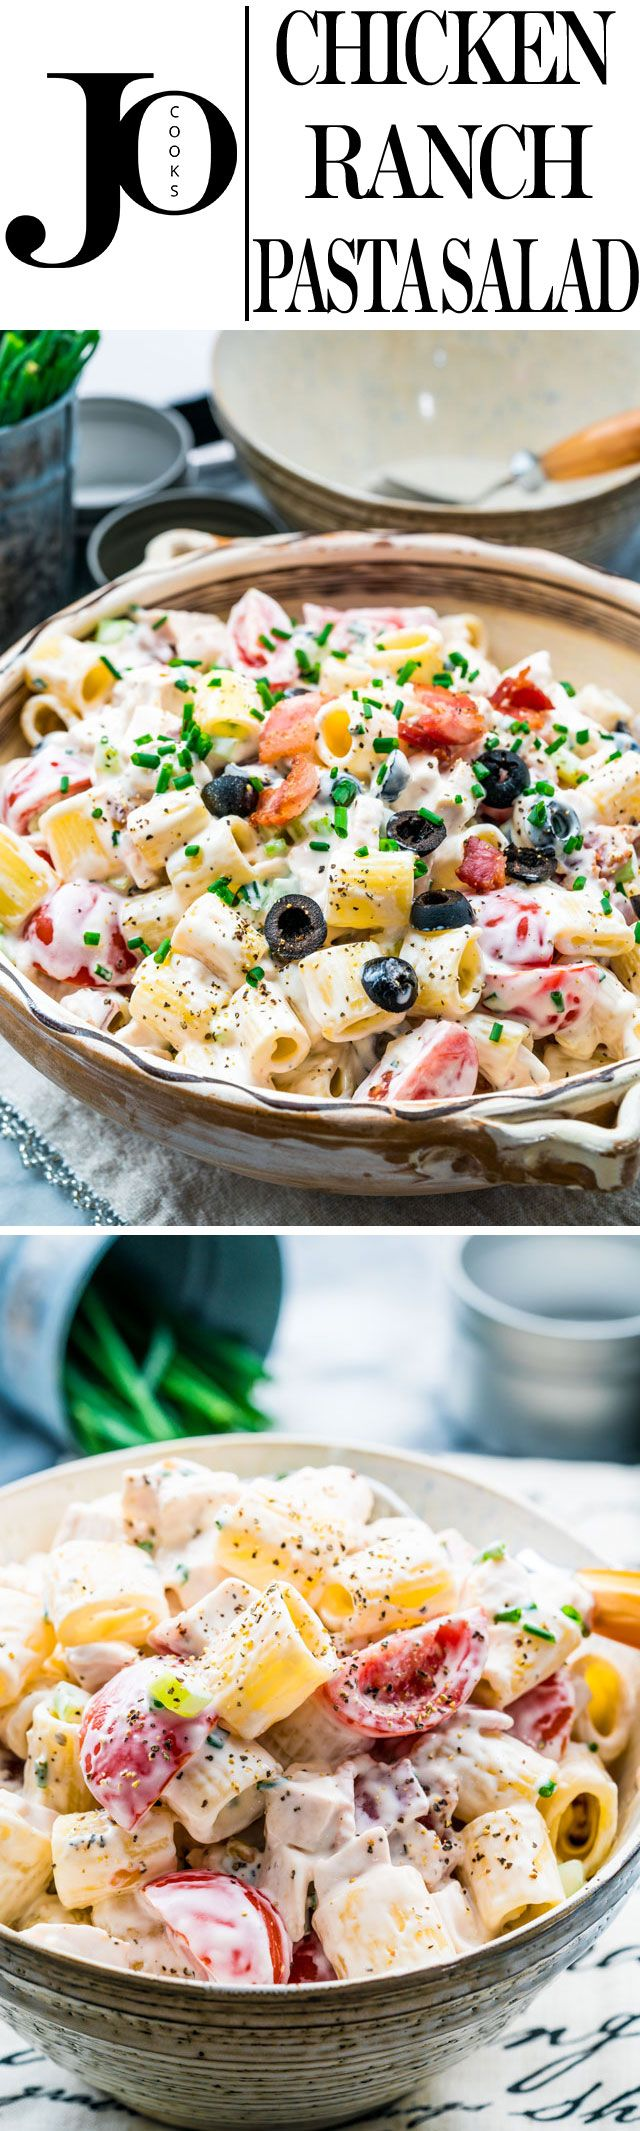 "This Chicken Ranch Pasta Salad is perfect for a BBQ, a picnic or a lunch. Loaded with chicken, bacon, tomatoes and olives and smothered in a creamy ranch, mayo and sour cream dressing, this will be your ""go to"" pasta salad this summer!"